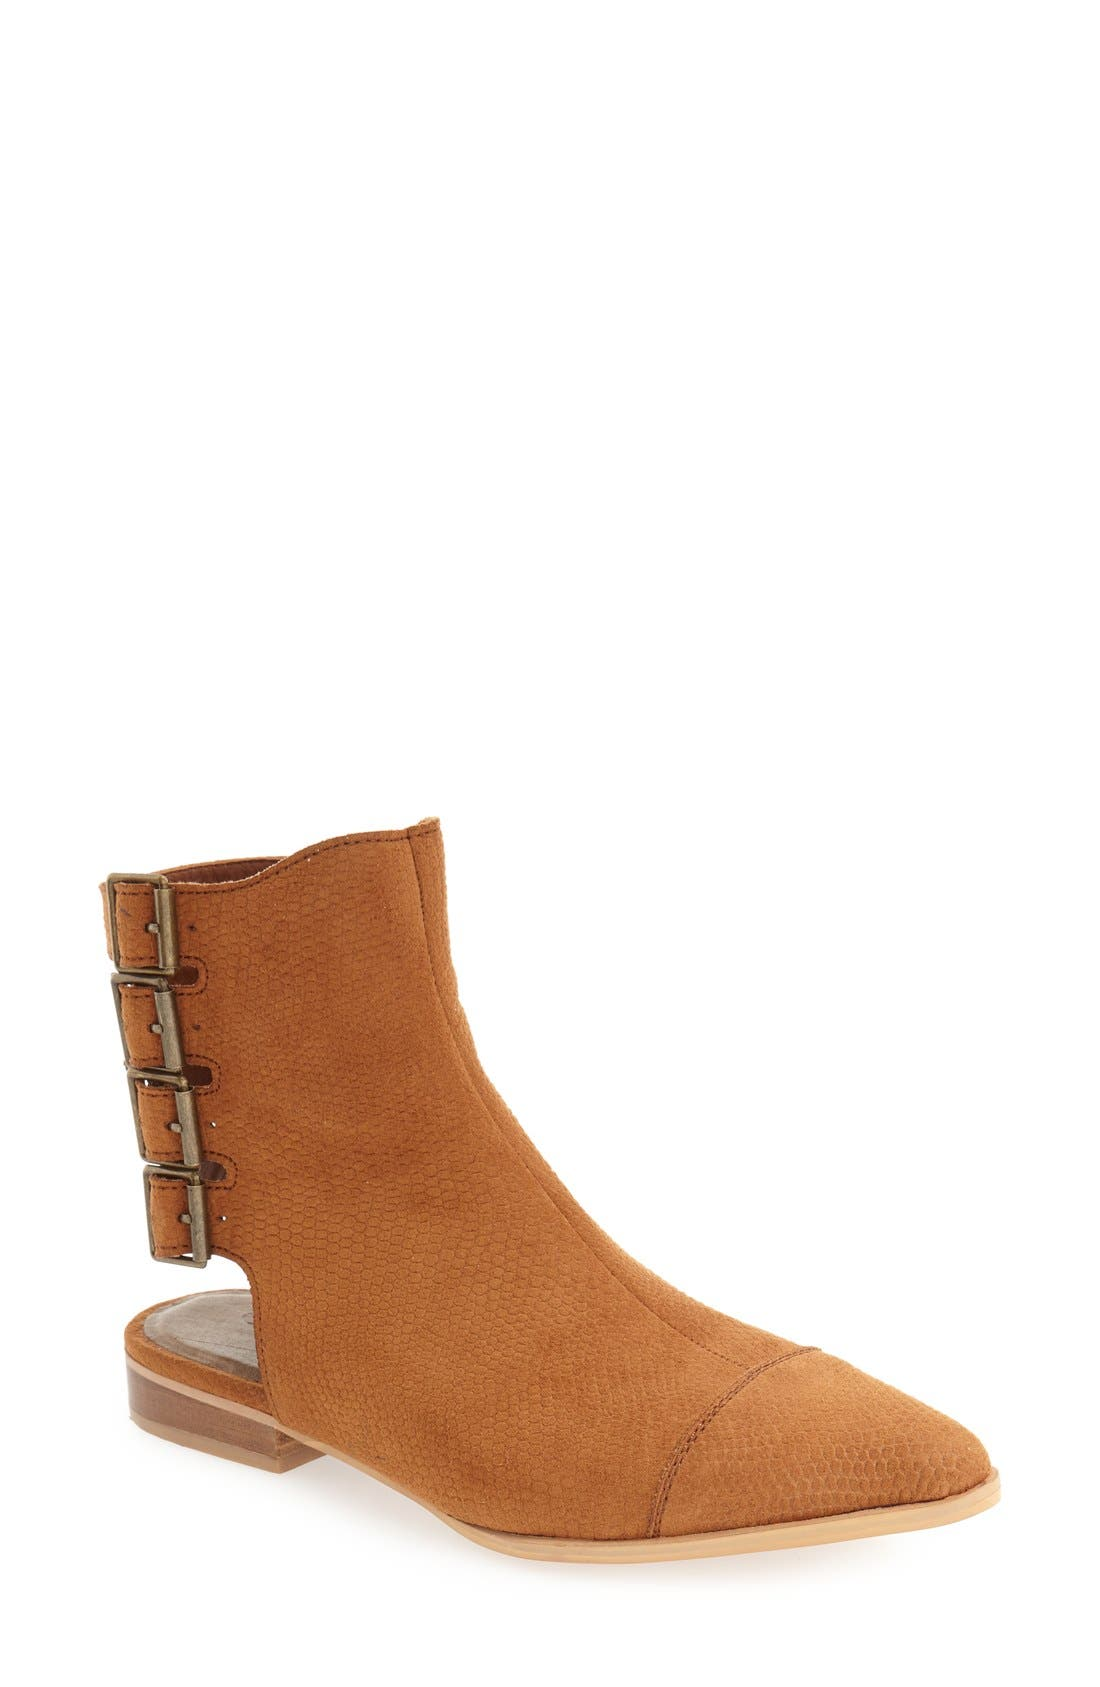 COCONUTS BY MATISSE Matisse 'Edgar' Pointy Toe Boot